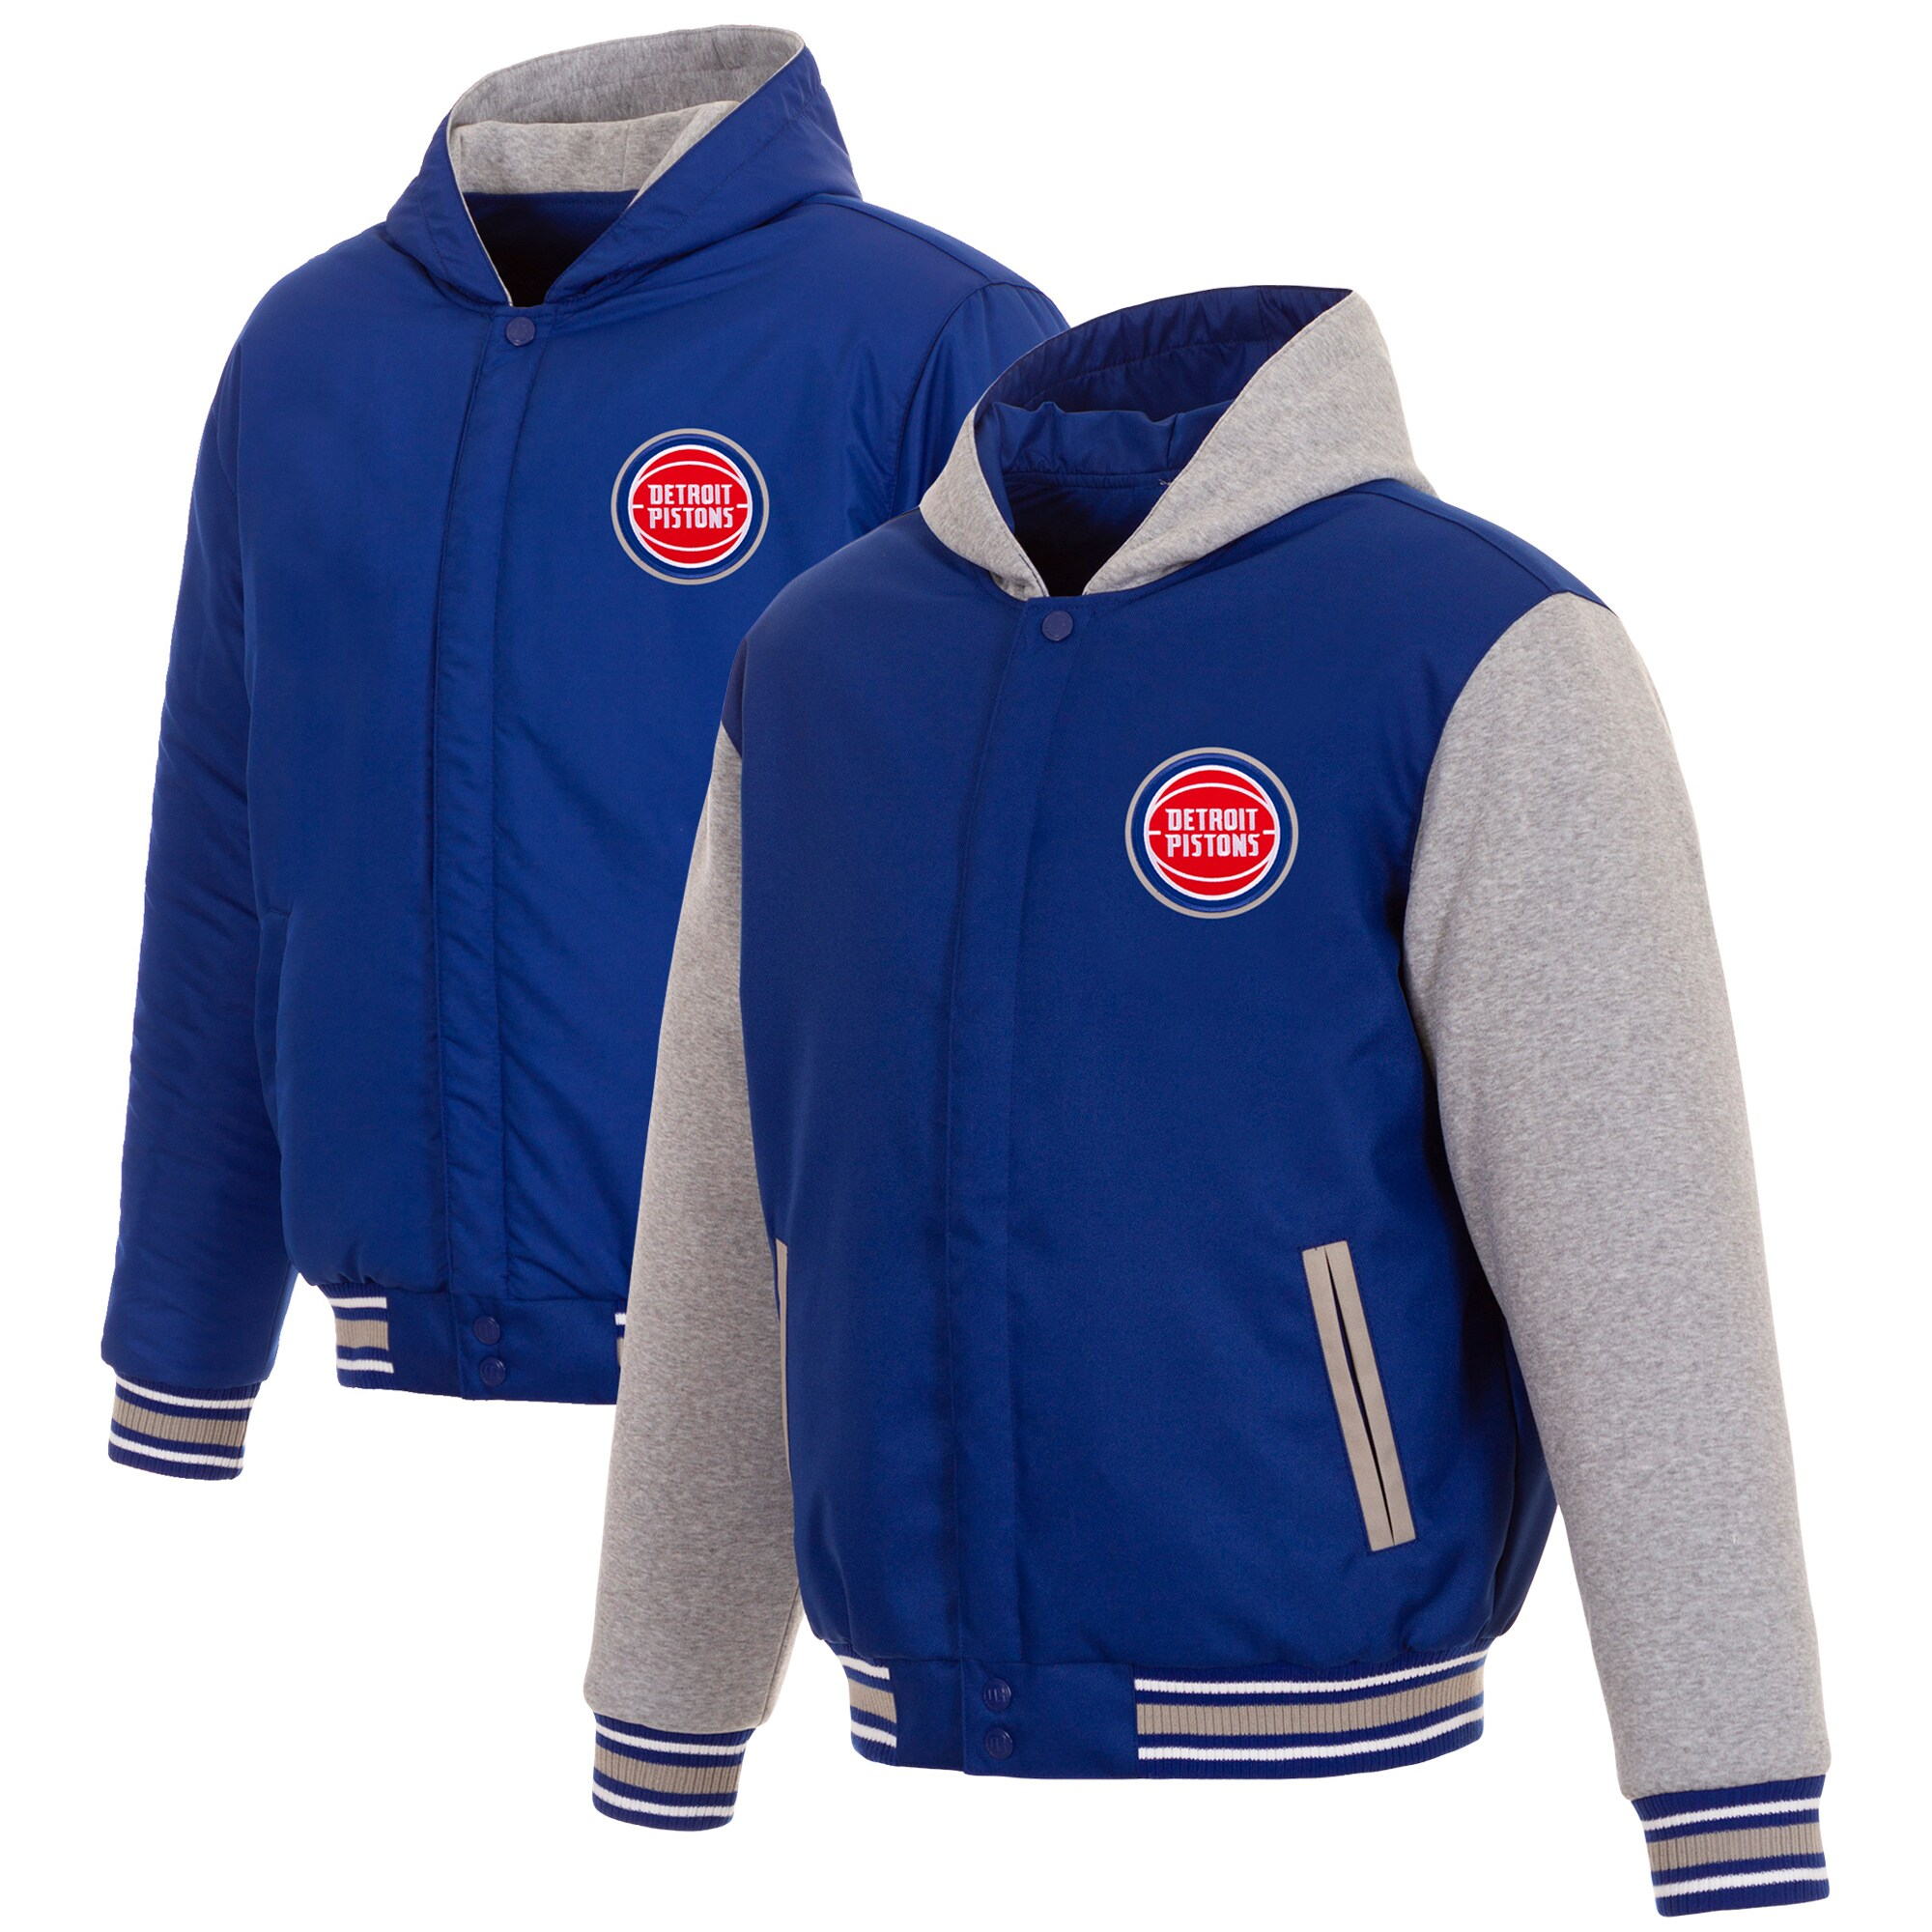 Detroit Pistons JH Design Reversible Poly-Twill Hooded Jacket with Fleece Sleeves - Royal/Gray